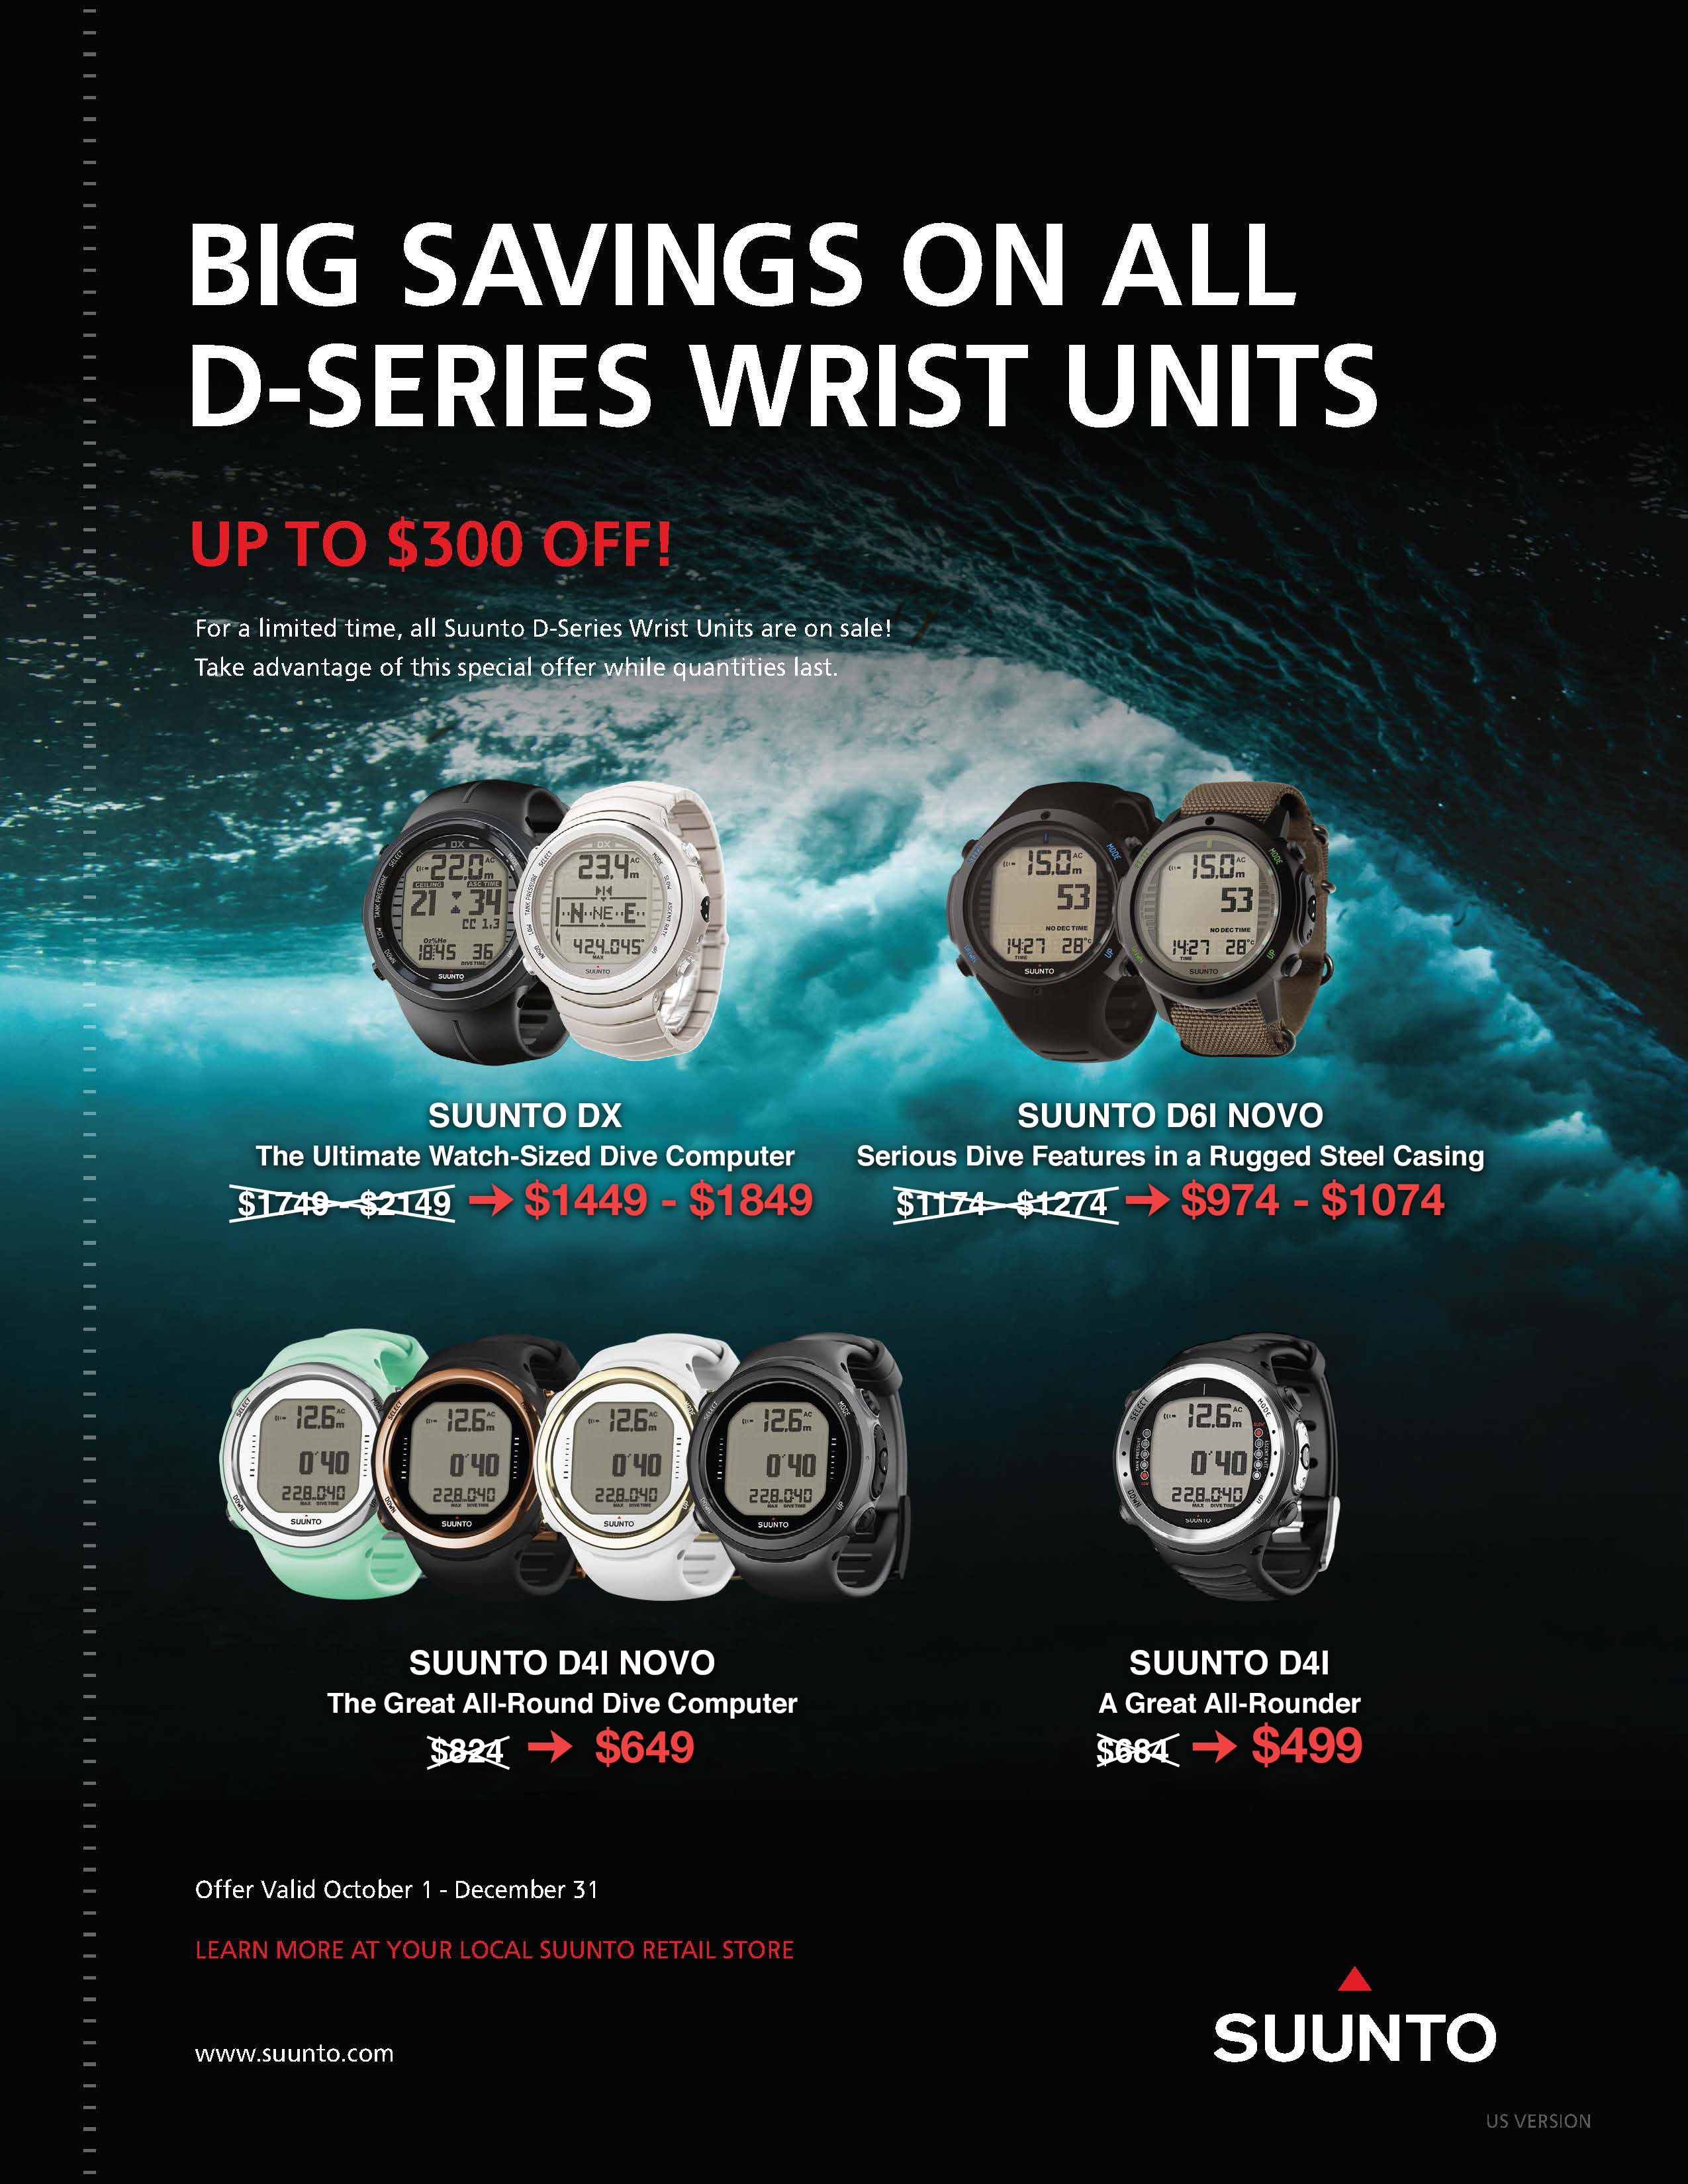 Save Up to $300 on SUUNTO D-Series Watches